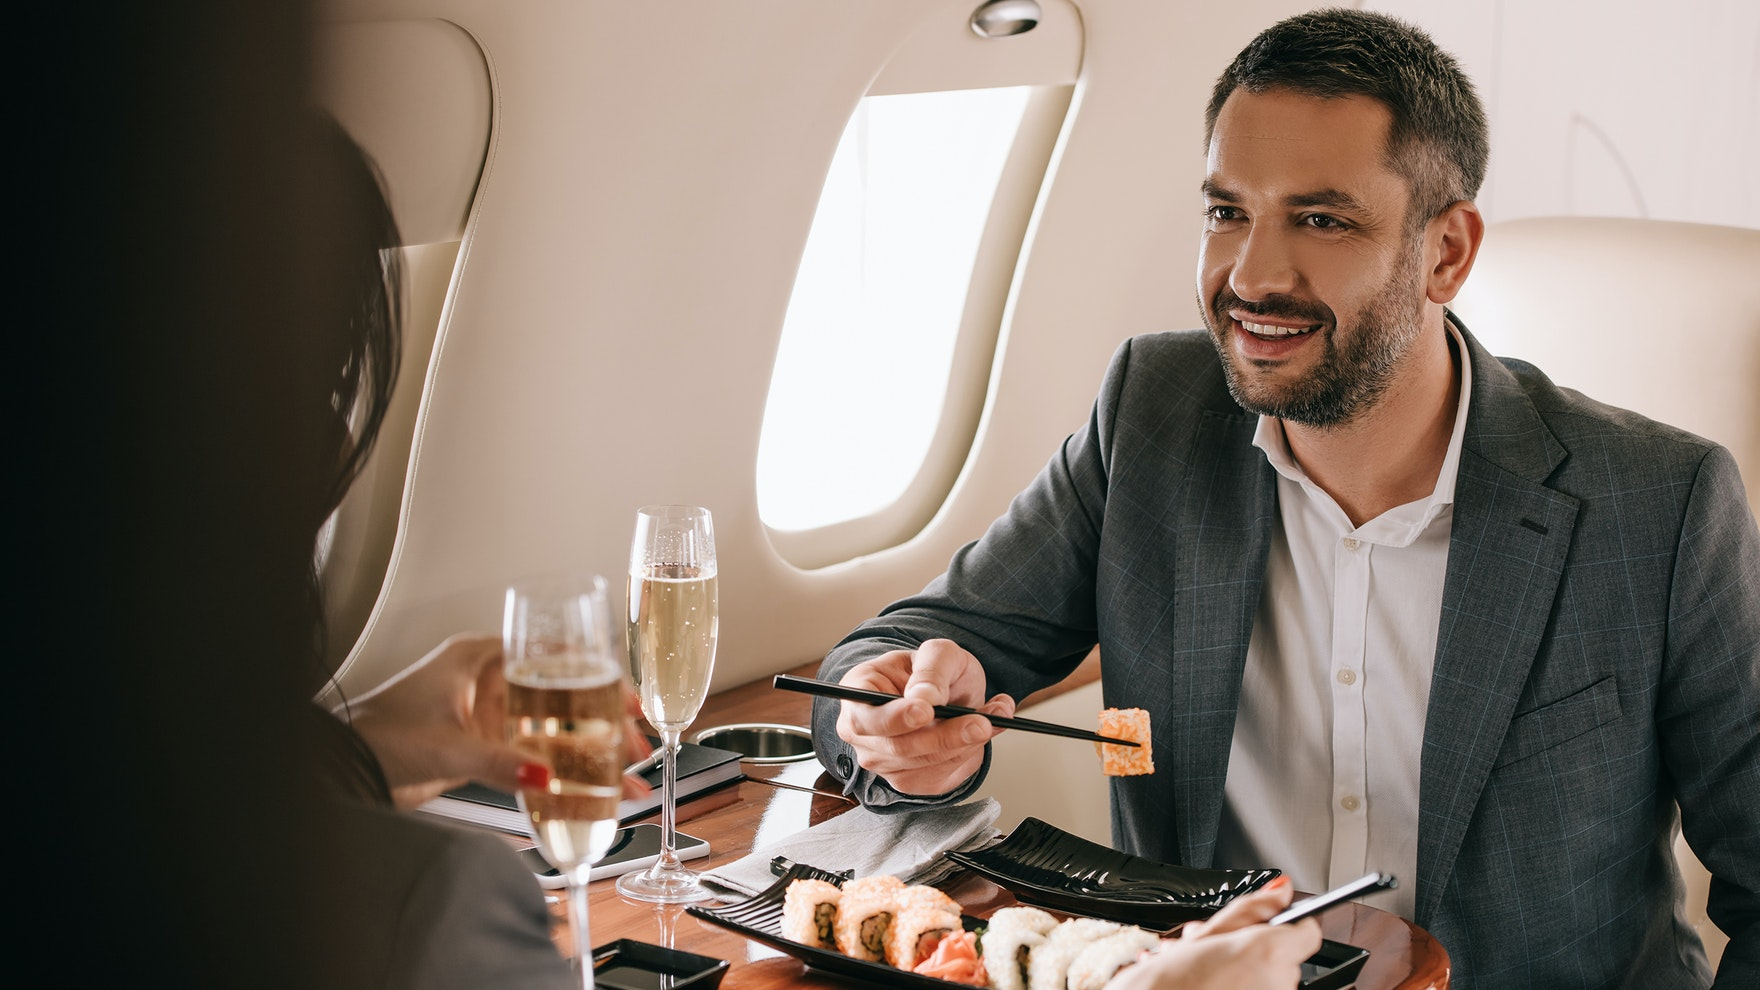 Photo Of Man Eating Sushi On Private Jet